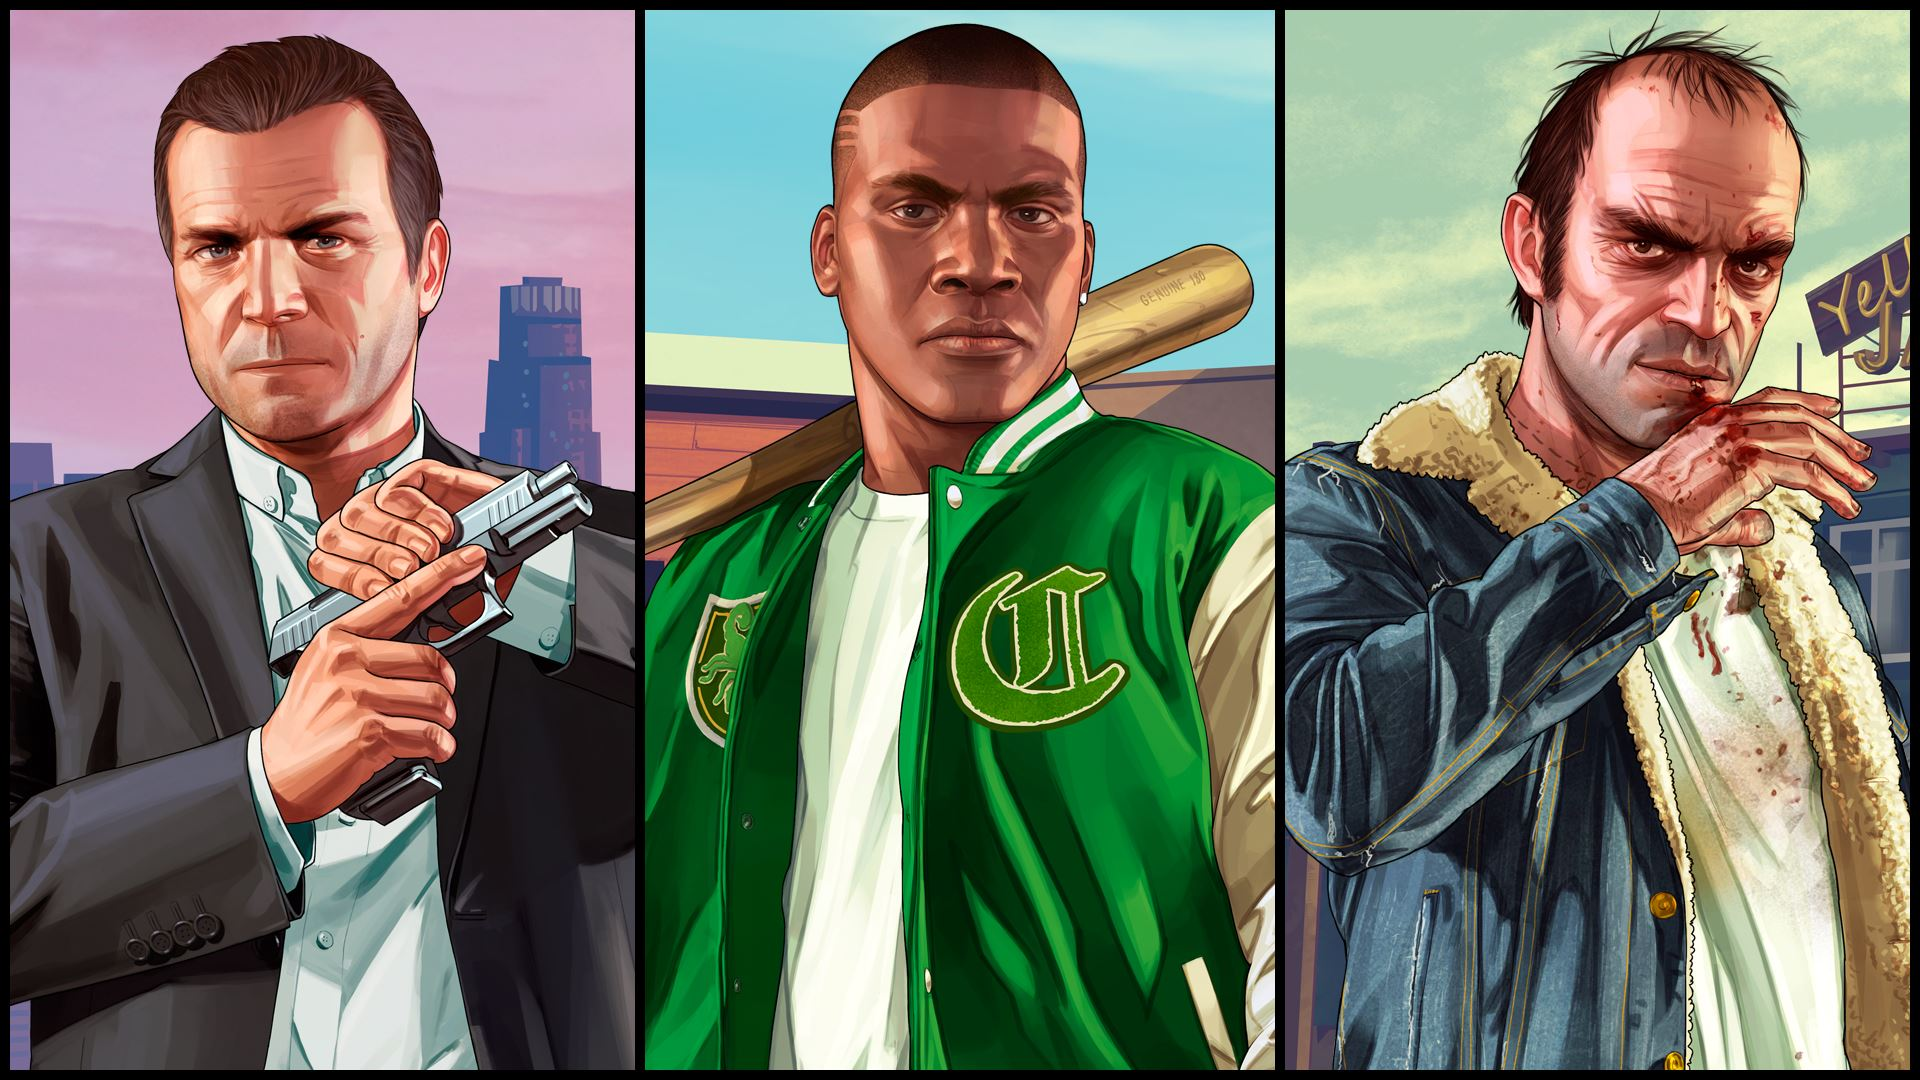 Grand Theft Auto Movie Reported To Be In The Works